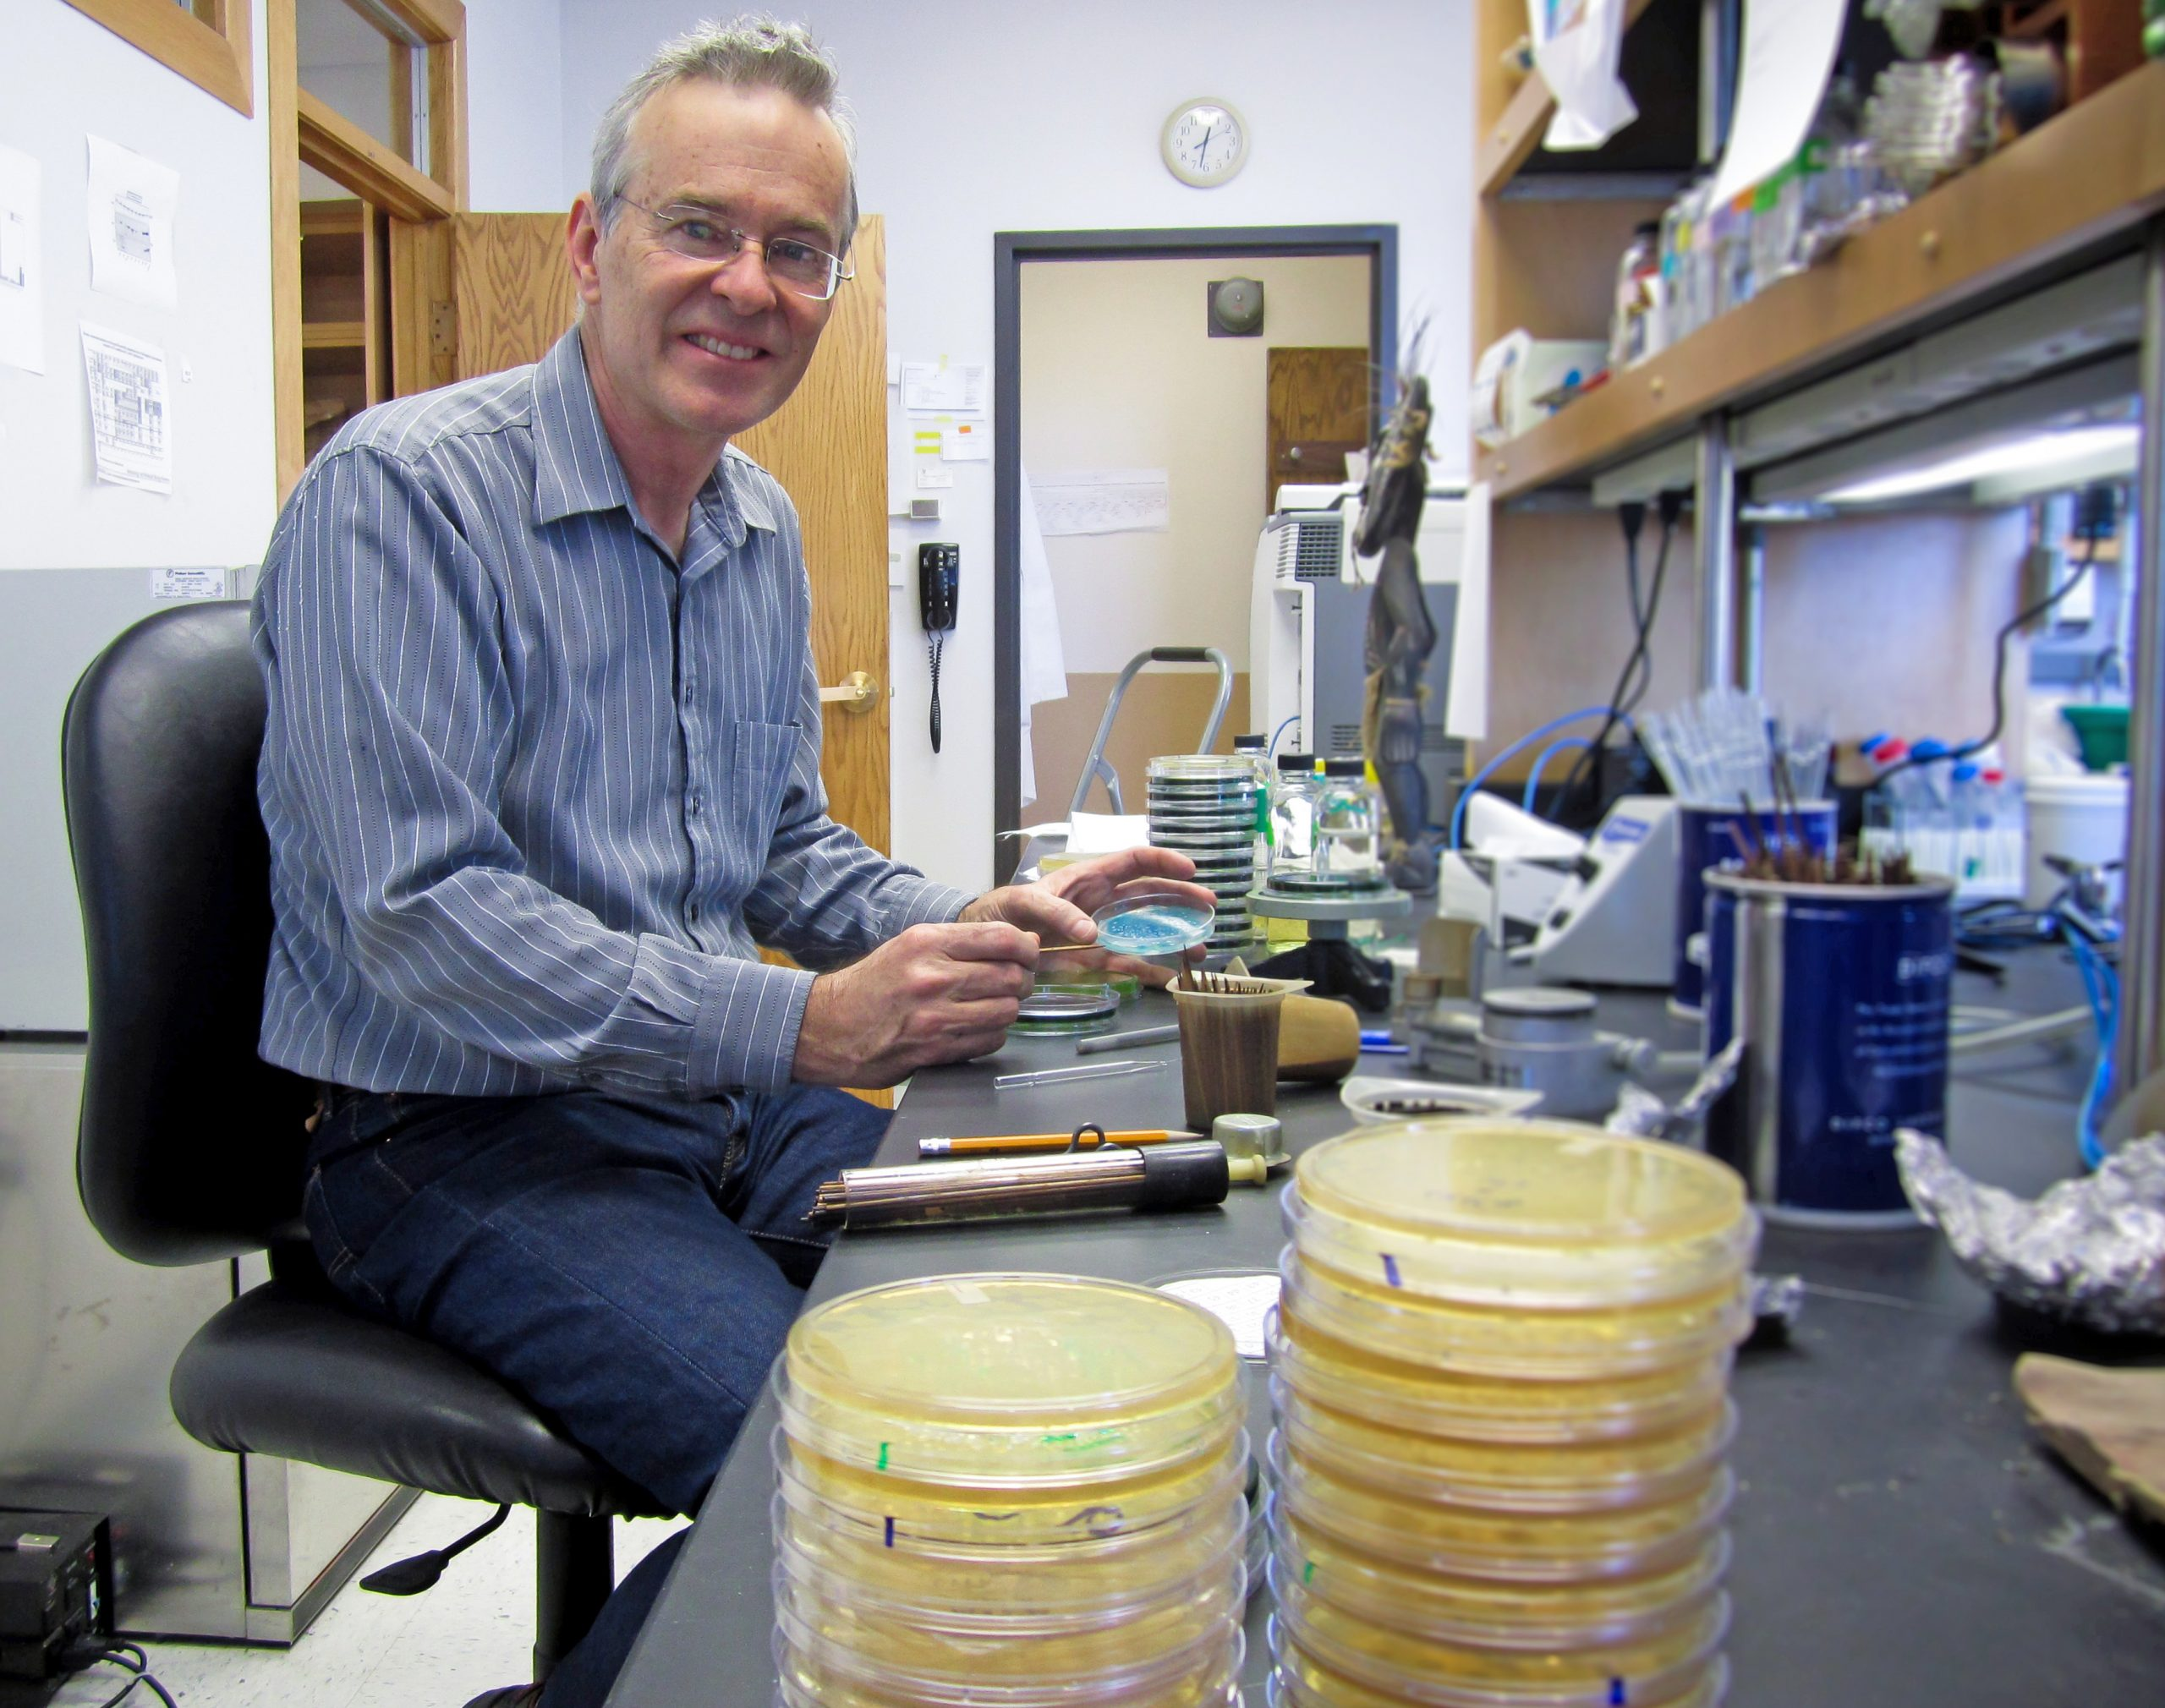 """Biology professor Kelly Hughes in his University of Utah lab. He is senior author of a new study showing that salmonella bacteria – like plague and certain other disease-causing bacteria – use a molecular ruler or tape measure to determine the length of the bacterial """"injectisomes,"""" which are needles these bacteria use to inject infection-promoting proteins into target cells. The study, co-authored by doctoral student Daniel Wee, has potential long-term applications for new antibiotics and targeted anticancer drugs, and for helping people design machines at the nanoscopic or molecular scale."""